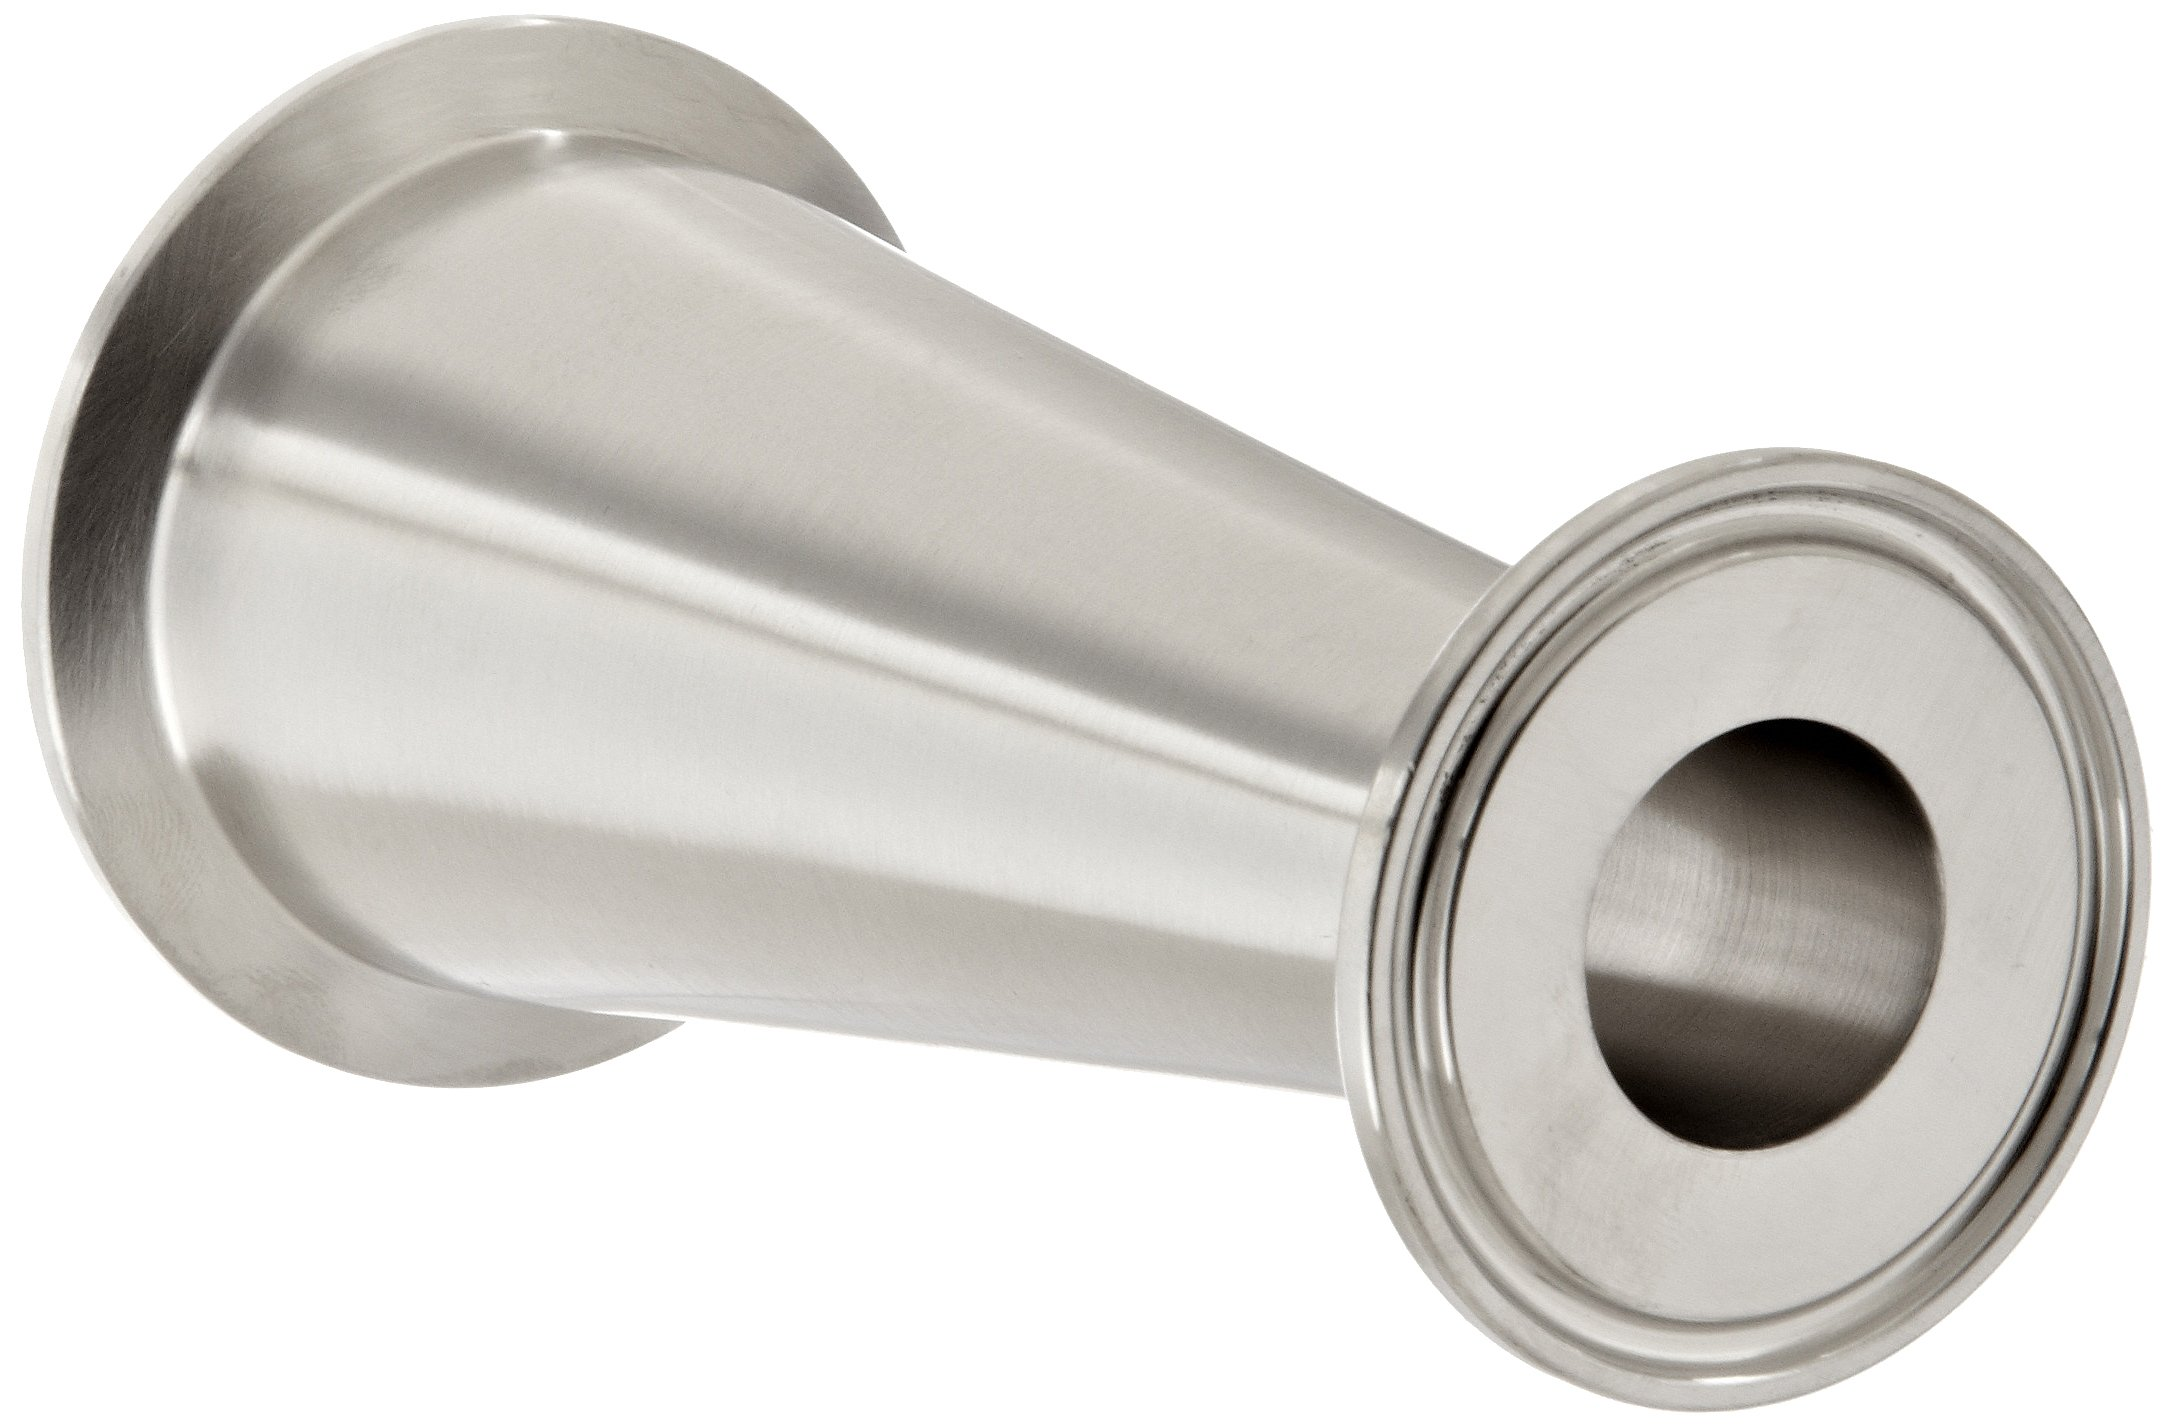 Dixon B3114MP-G200100 Stainless Steel 304 Sanitary Fitting, Clamp Concentric Red Fiberglassucer, 2'' Tube OD x 1'' Tube OD